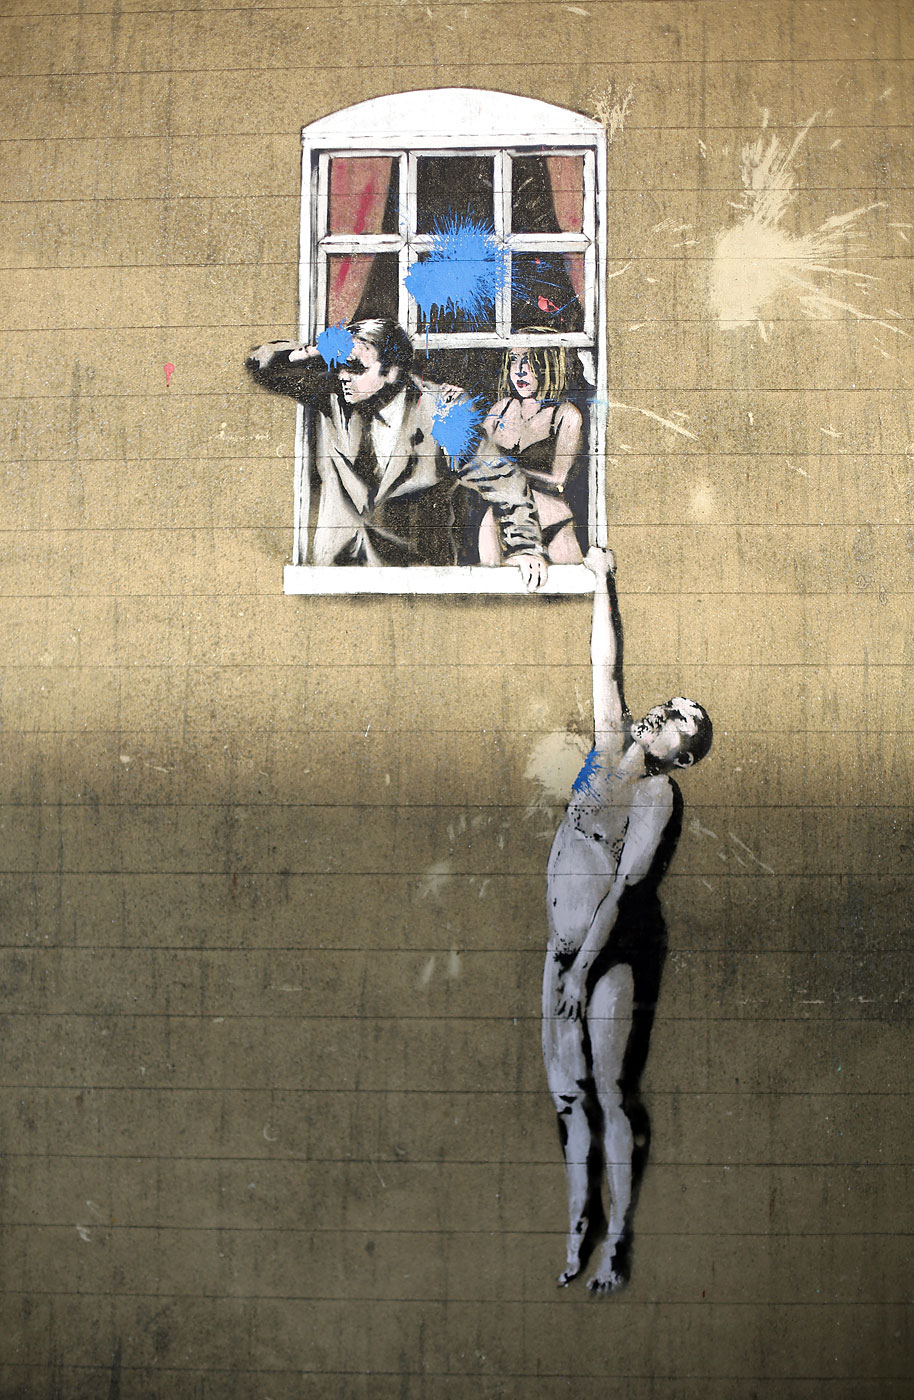 A mural by Banksy, which has been defaced by blue paint bombs, is seen on the side of a building in Park Street on March 4, 2013 in Bristol, England.